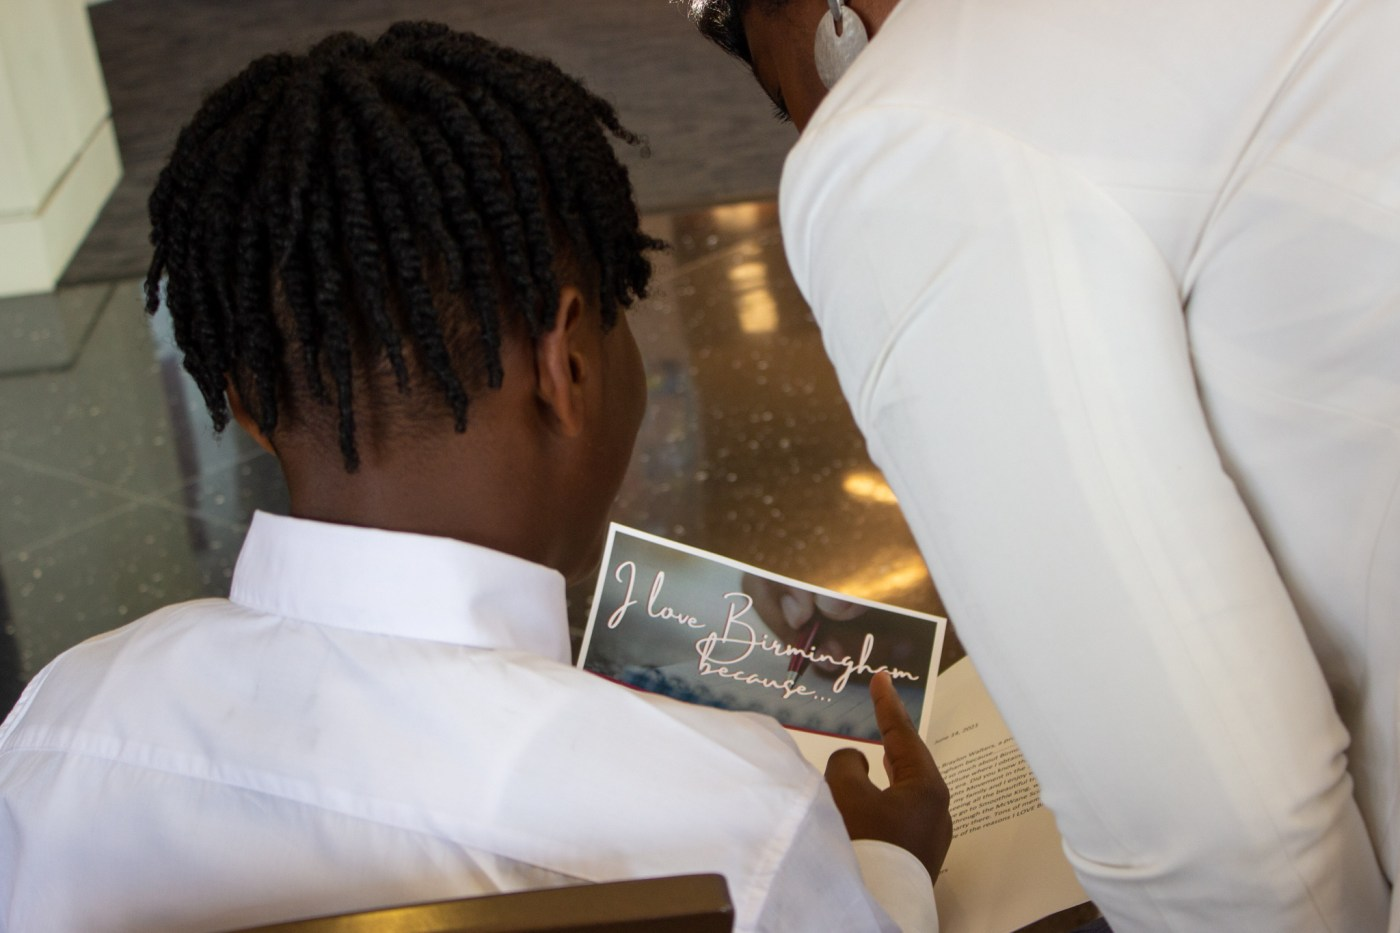 A Birmingham sixth grader read his love letter to Birmingham during the celebrations announcement. Photo by Libby Foster for Bham Now.